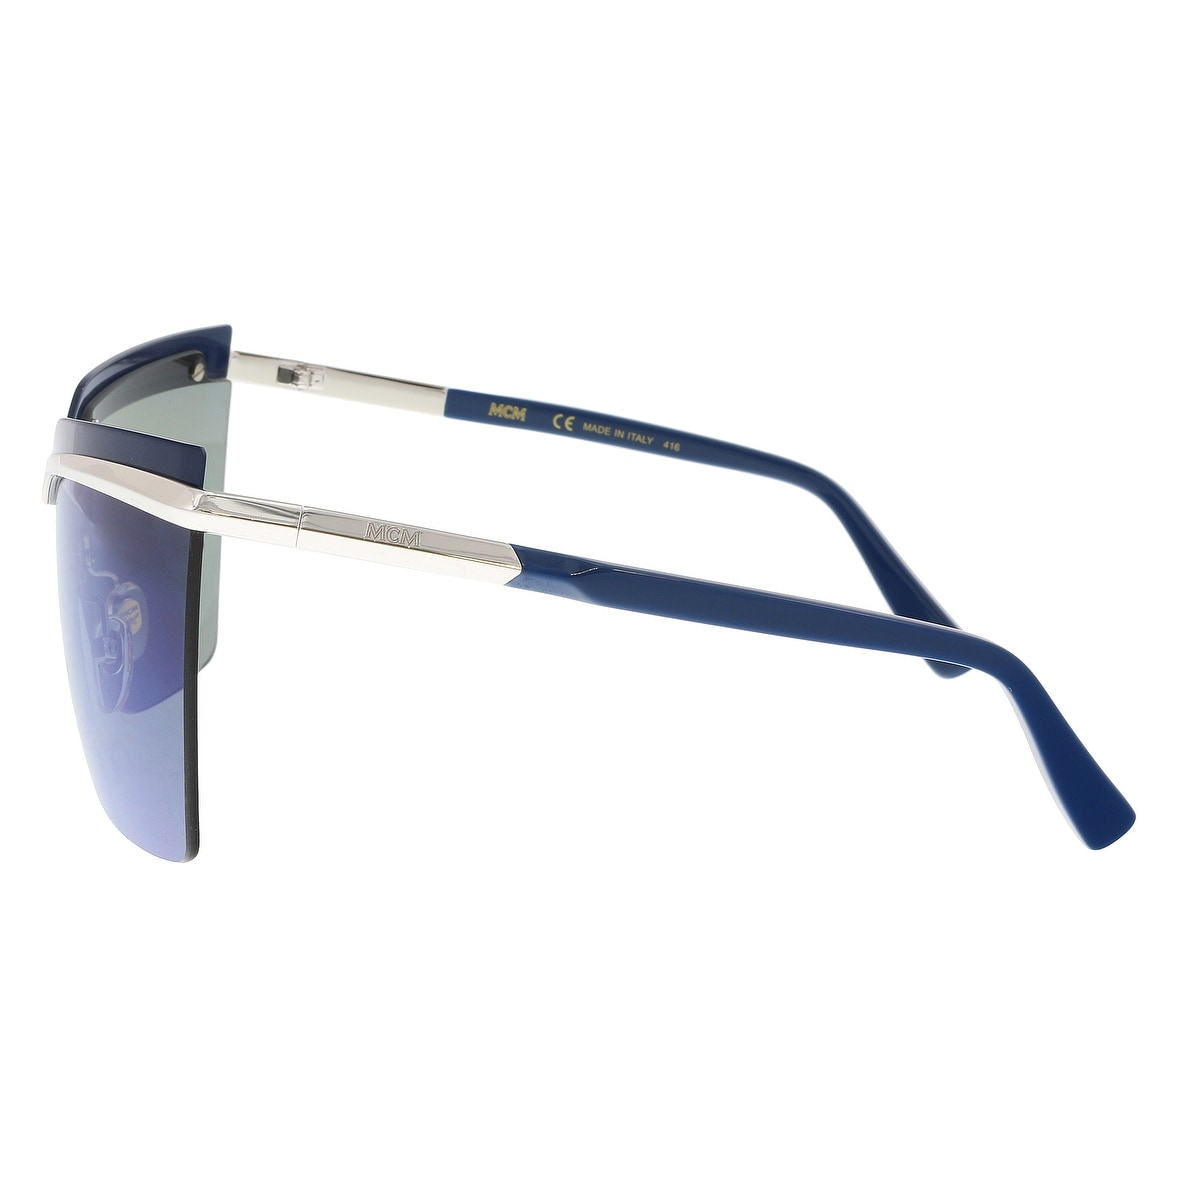 56e9c59600 Shop MCM MCM106S 45 Silver Shield Sunglasses - 65-19-135 - On Sale - Free  Shipping Today - Overstock - 20005129